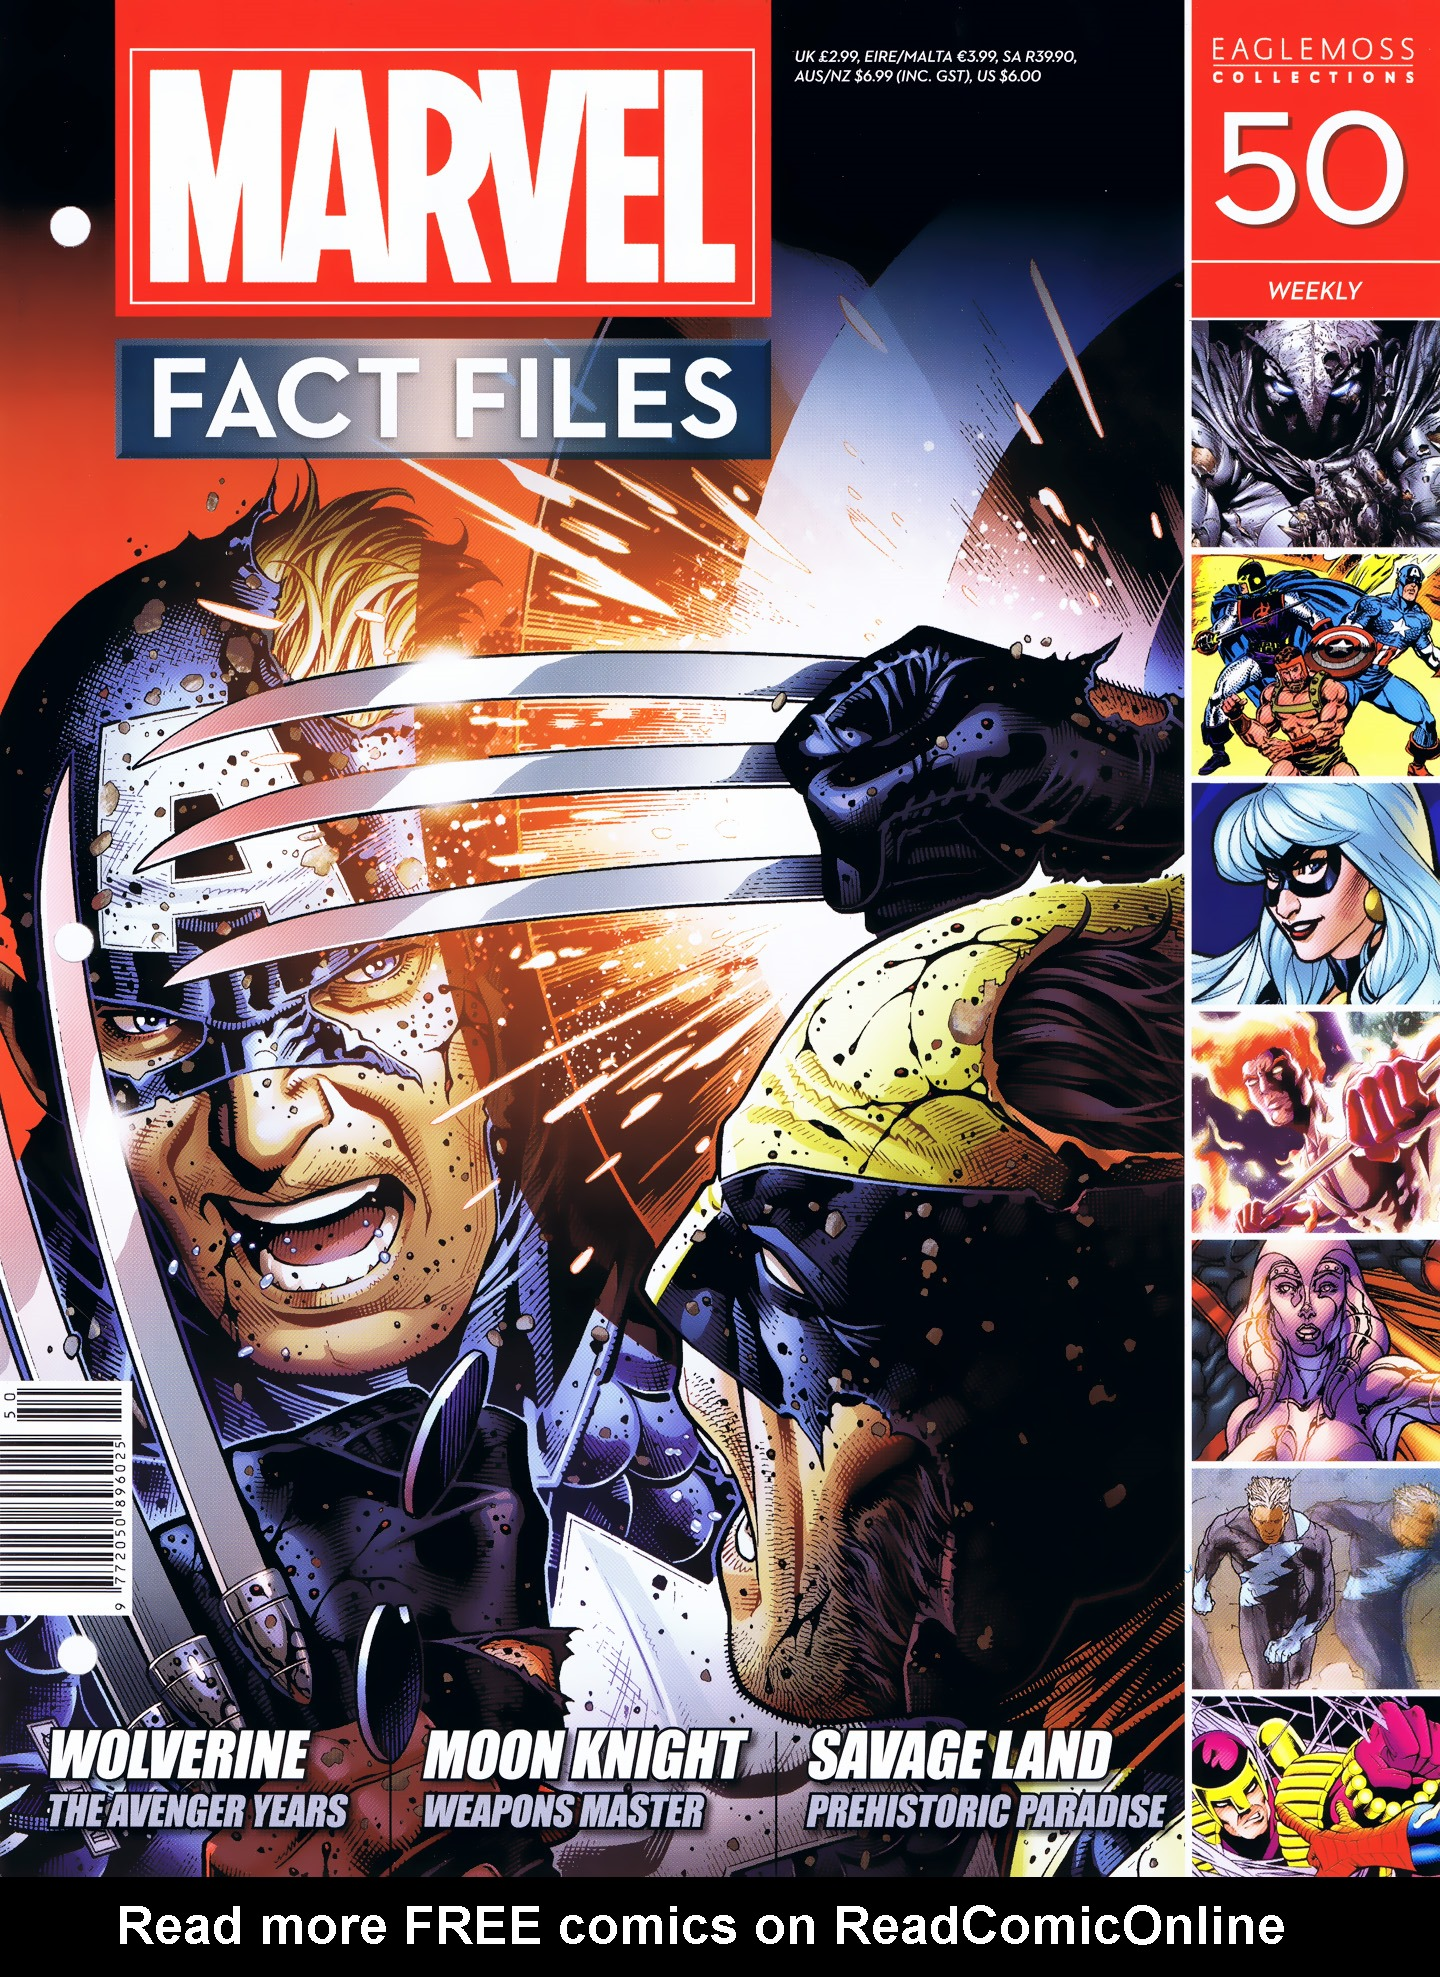 Marvel Fact Files 50 Page 1